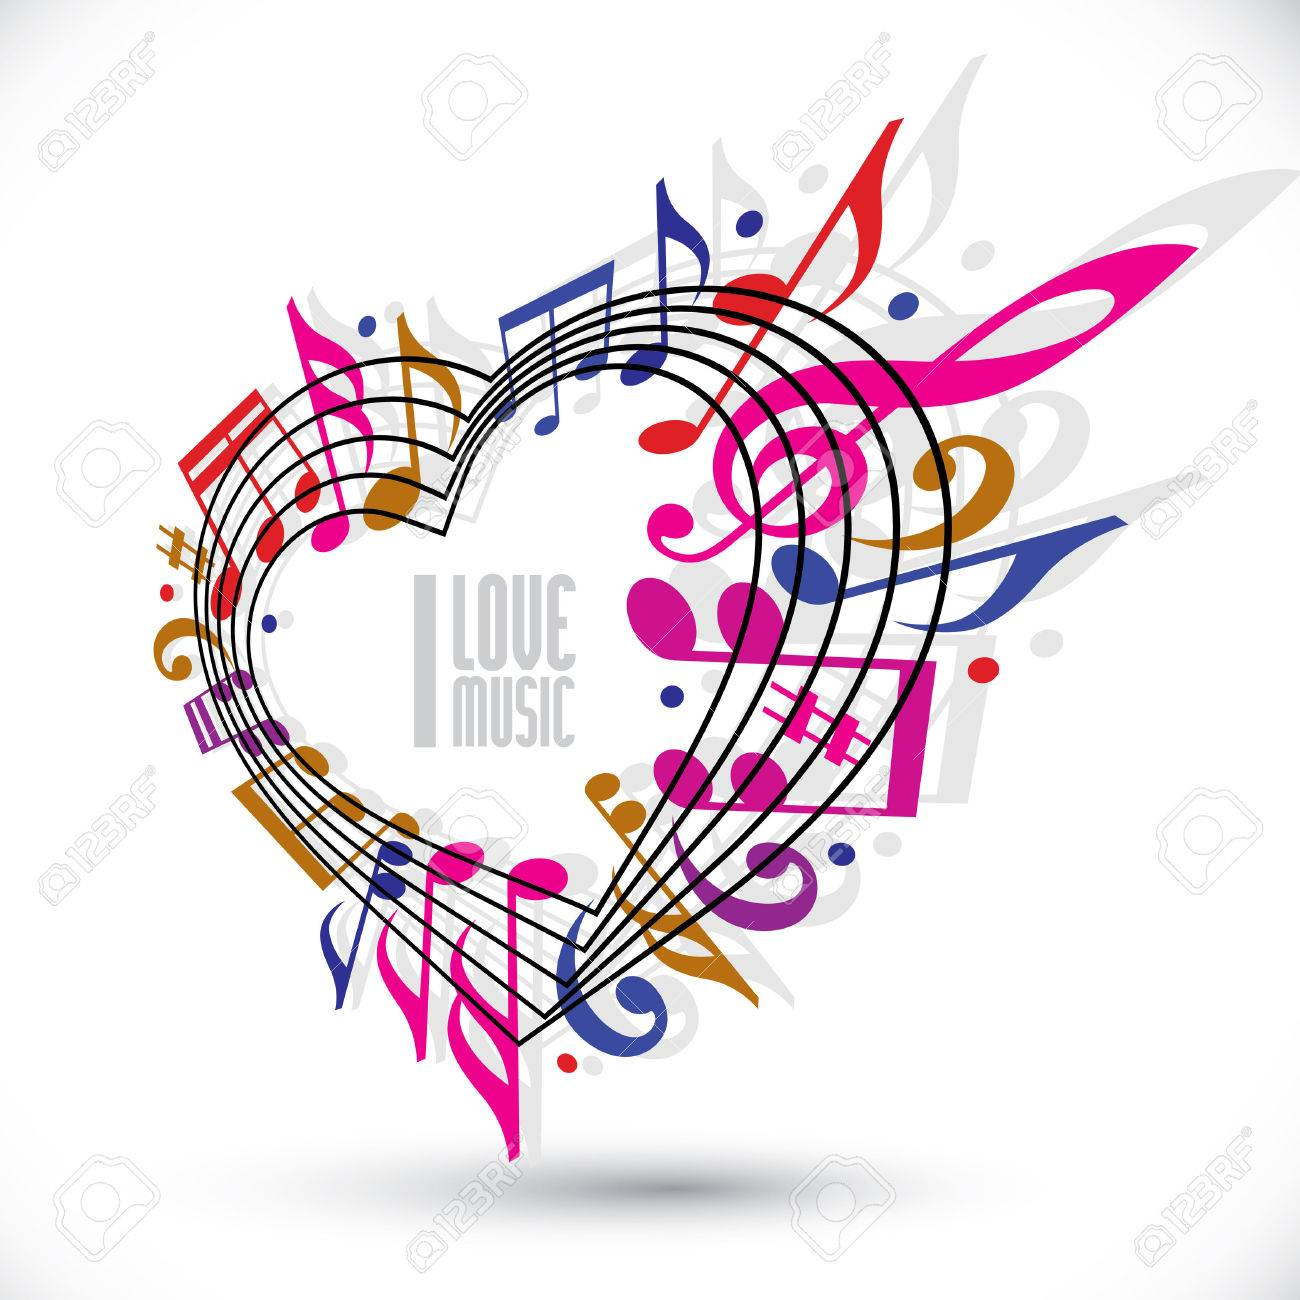 I love music template in red pink and violet colors, rotated in 3d, heart made with musical notes and clef Stock Vector - 30263149